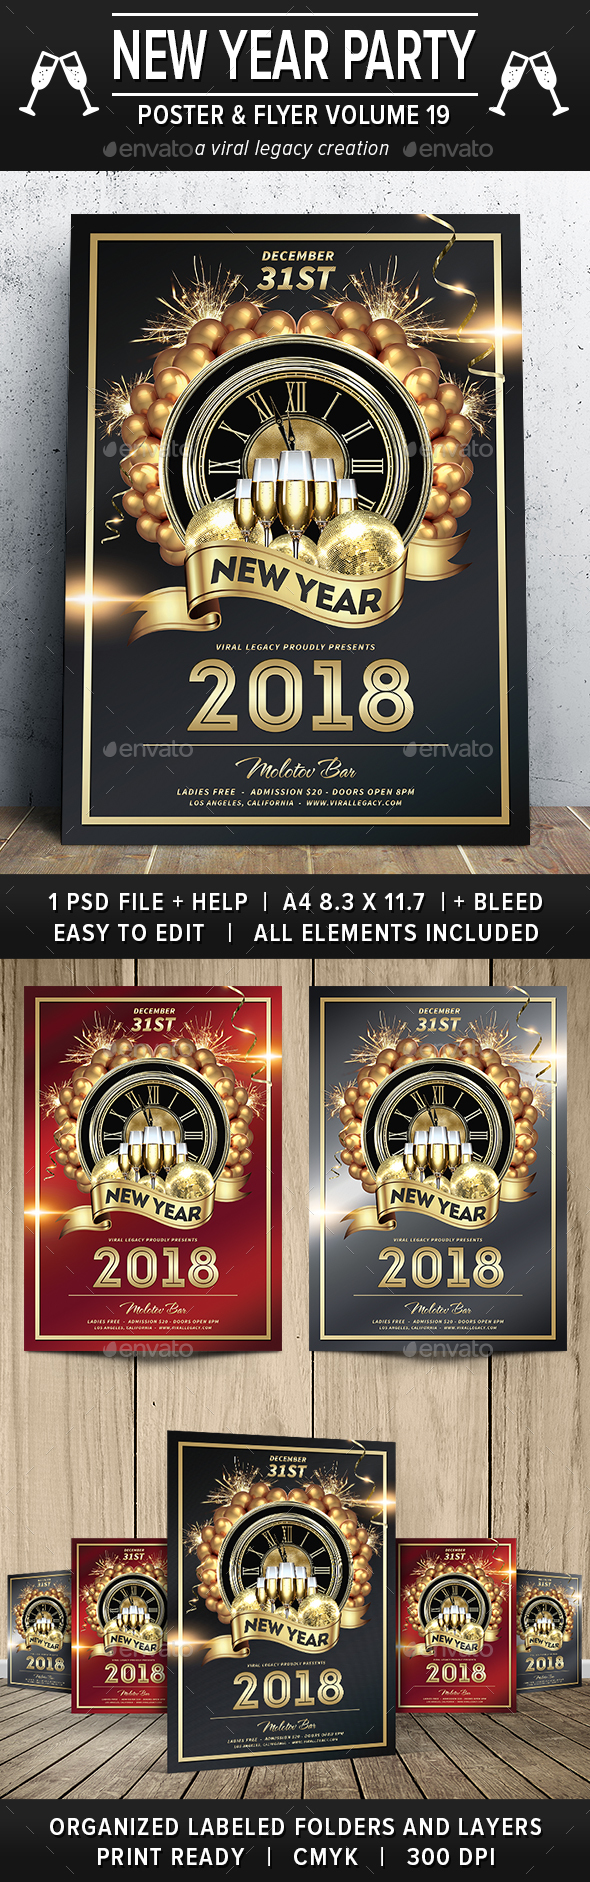 New Year Party Poster / Flyer V19 - Flyers Print Templates